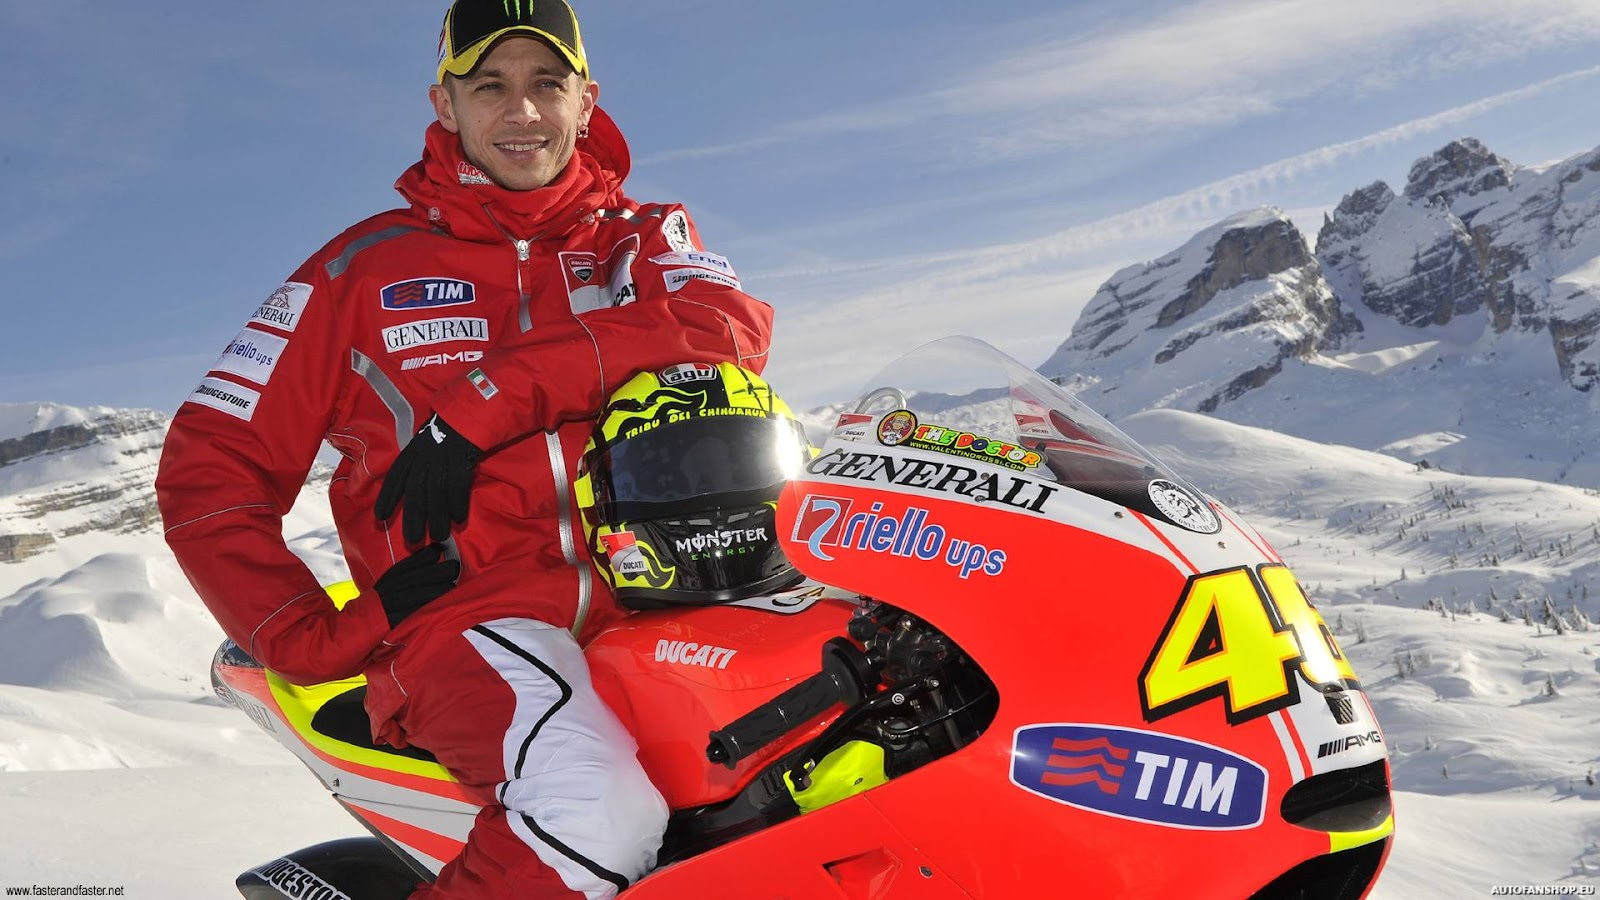 valentino rossi in snow Valentino Rossi wallpapers in HD